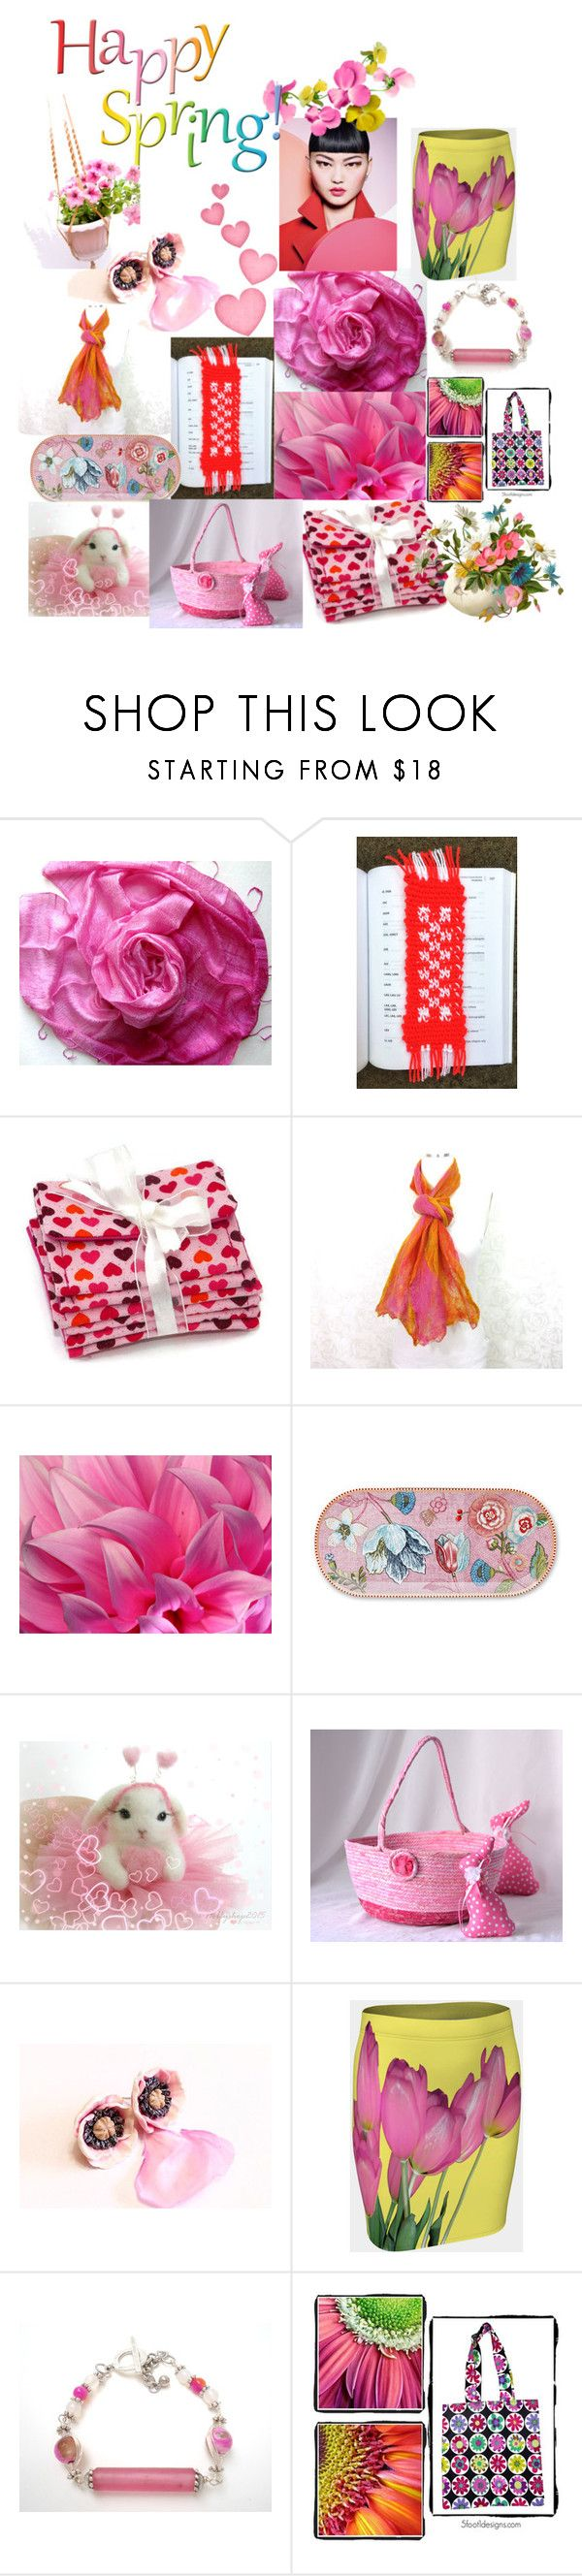 """""""Happy Spring"""" by anna-recycle ❤ liked on Polyvore featuring PiP Studio, modern, rustic and vintage"""